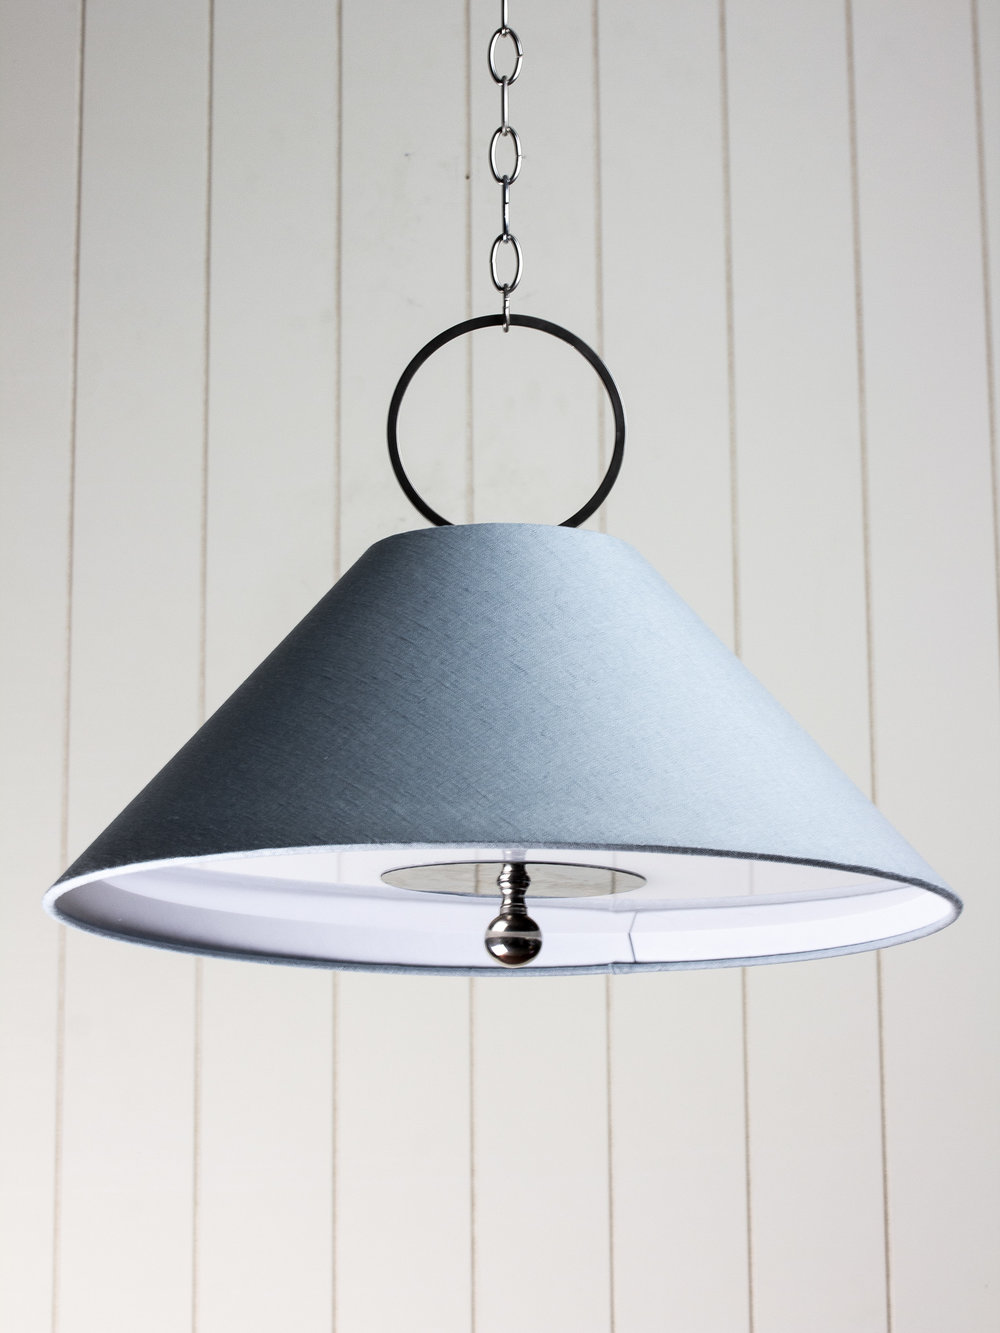 The Marley Ceiling Pendant Light